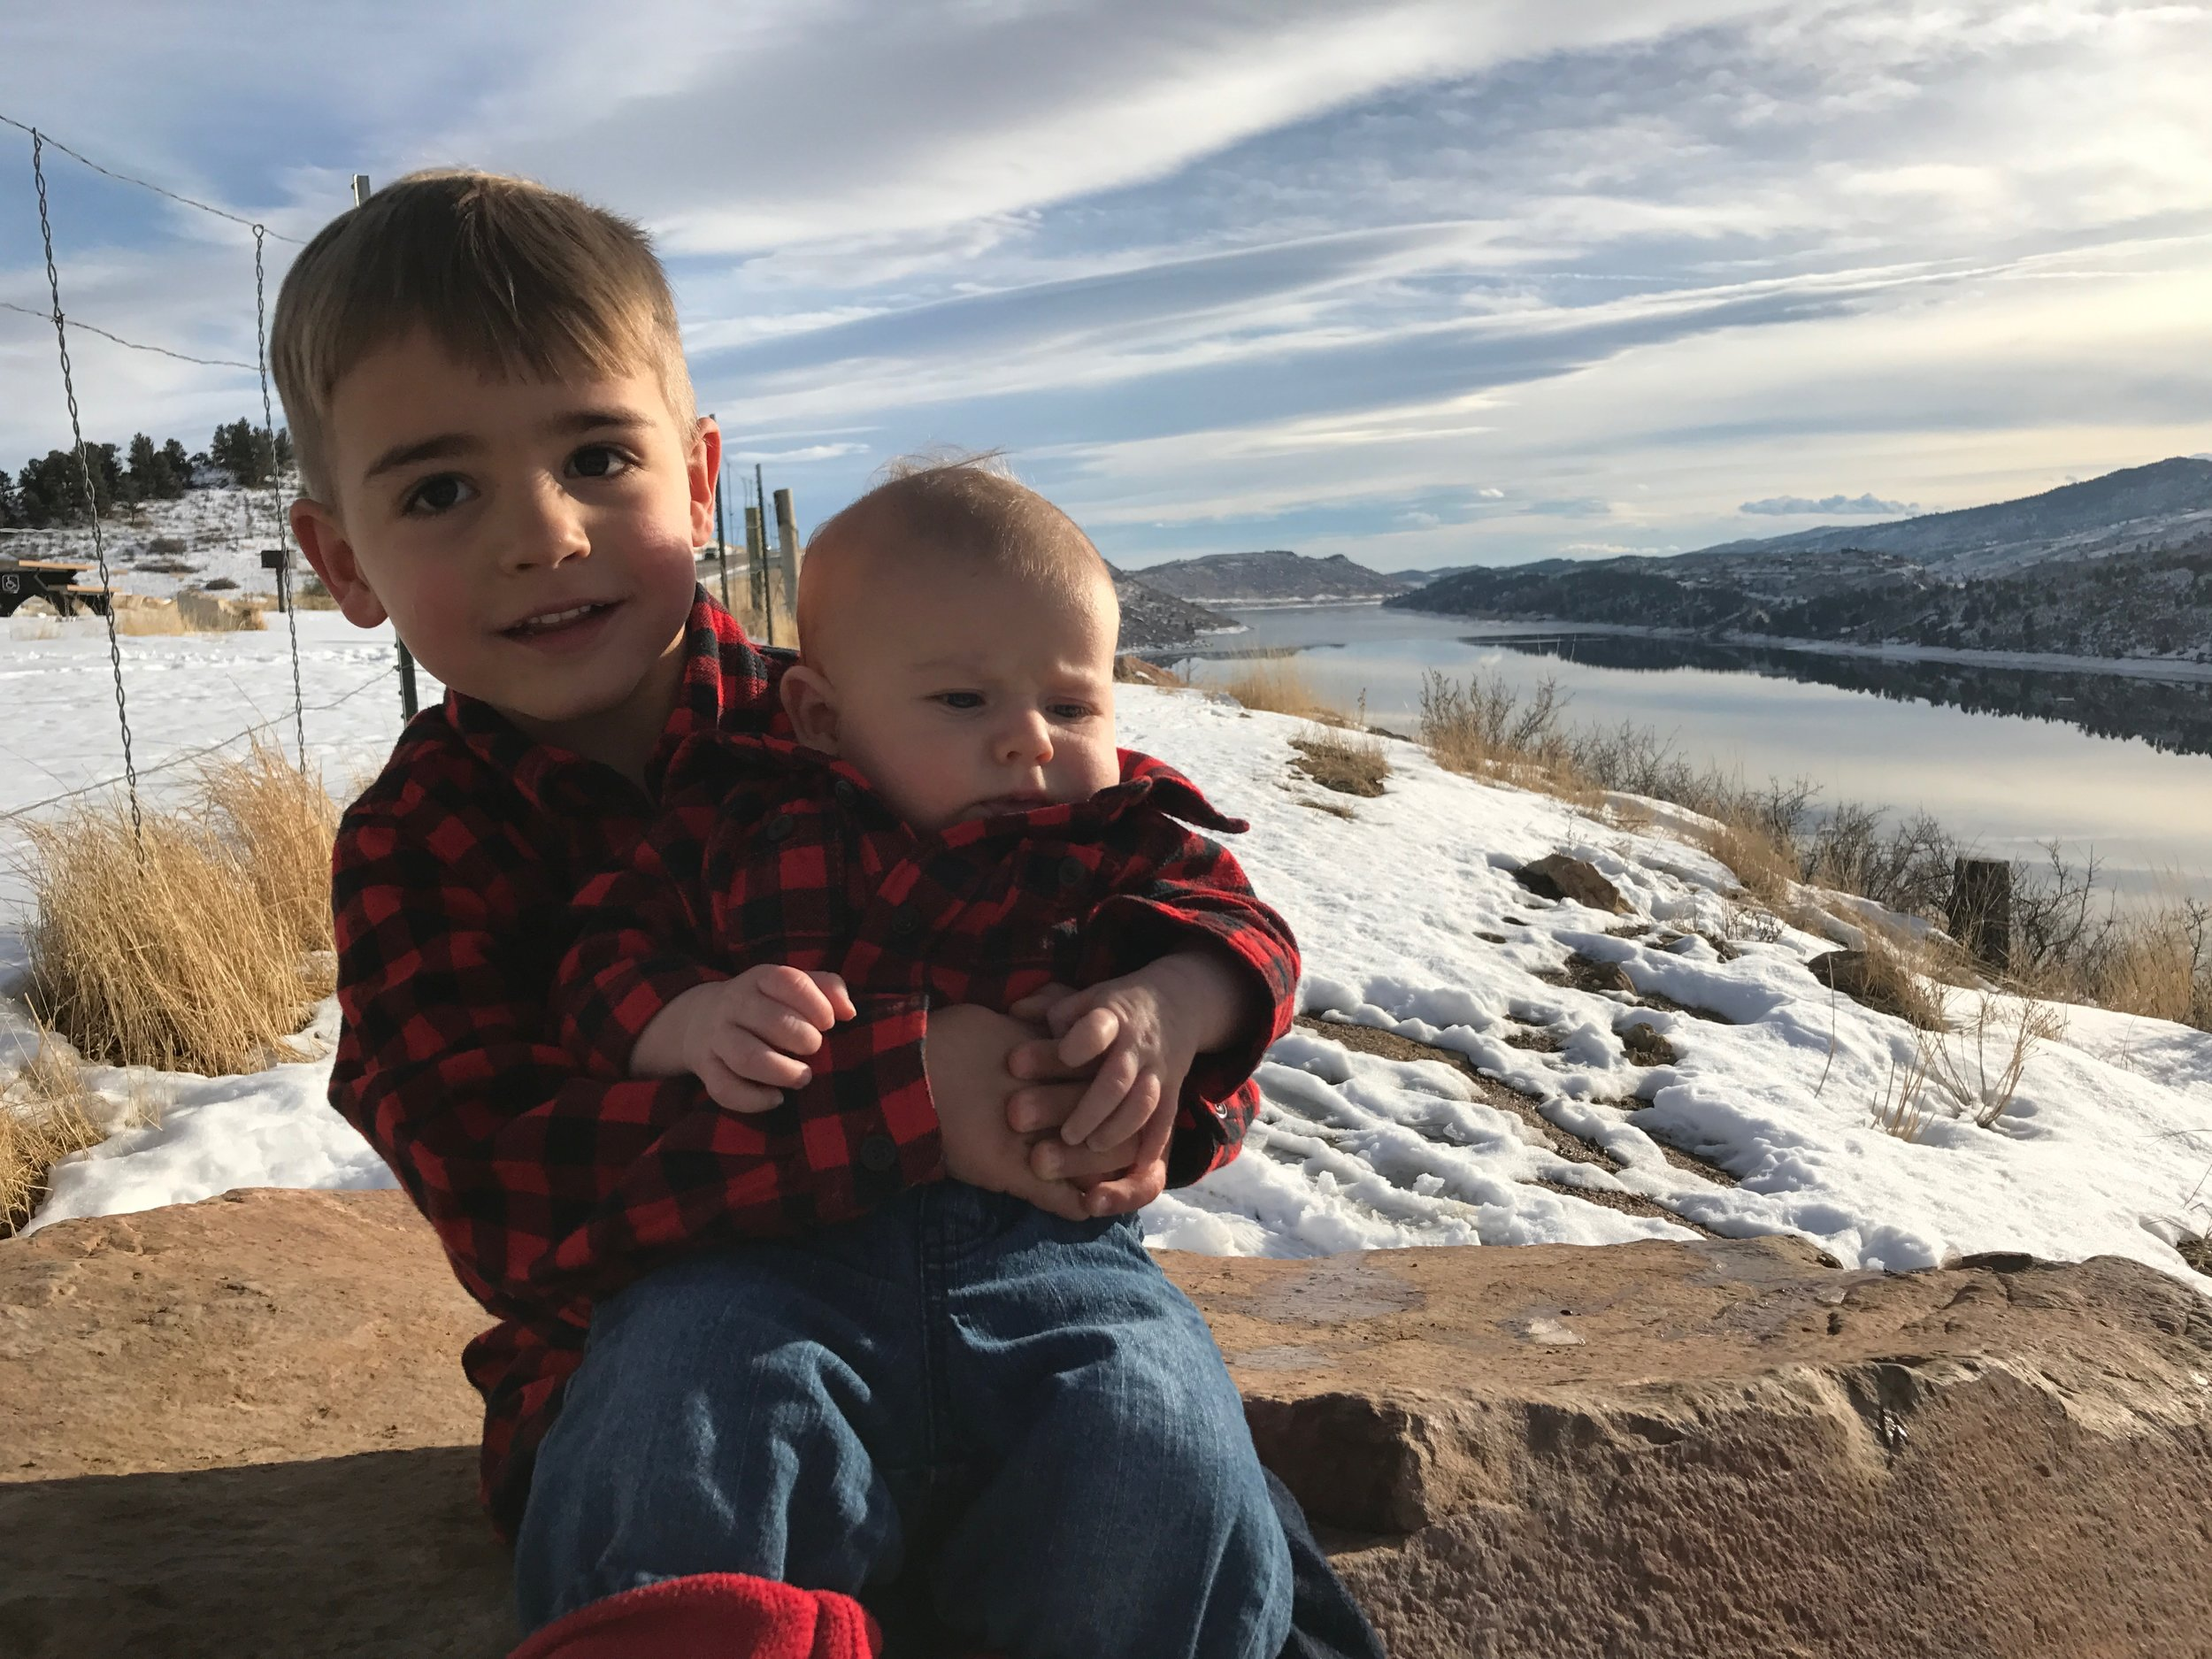 The boys. - January 2017 - Fort Collins, Colorado